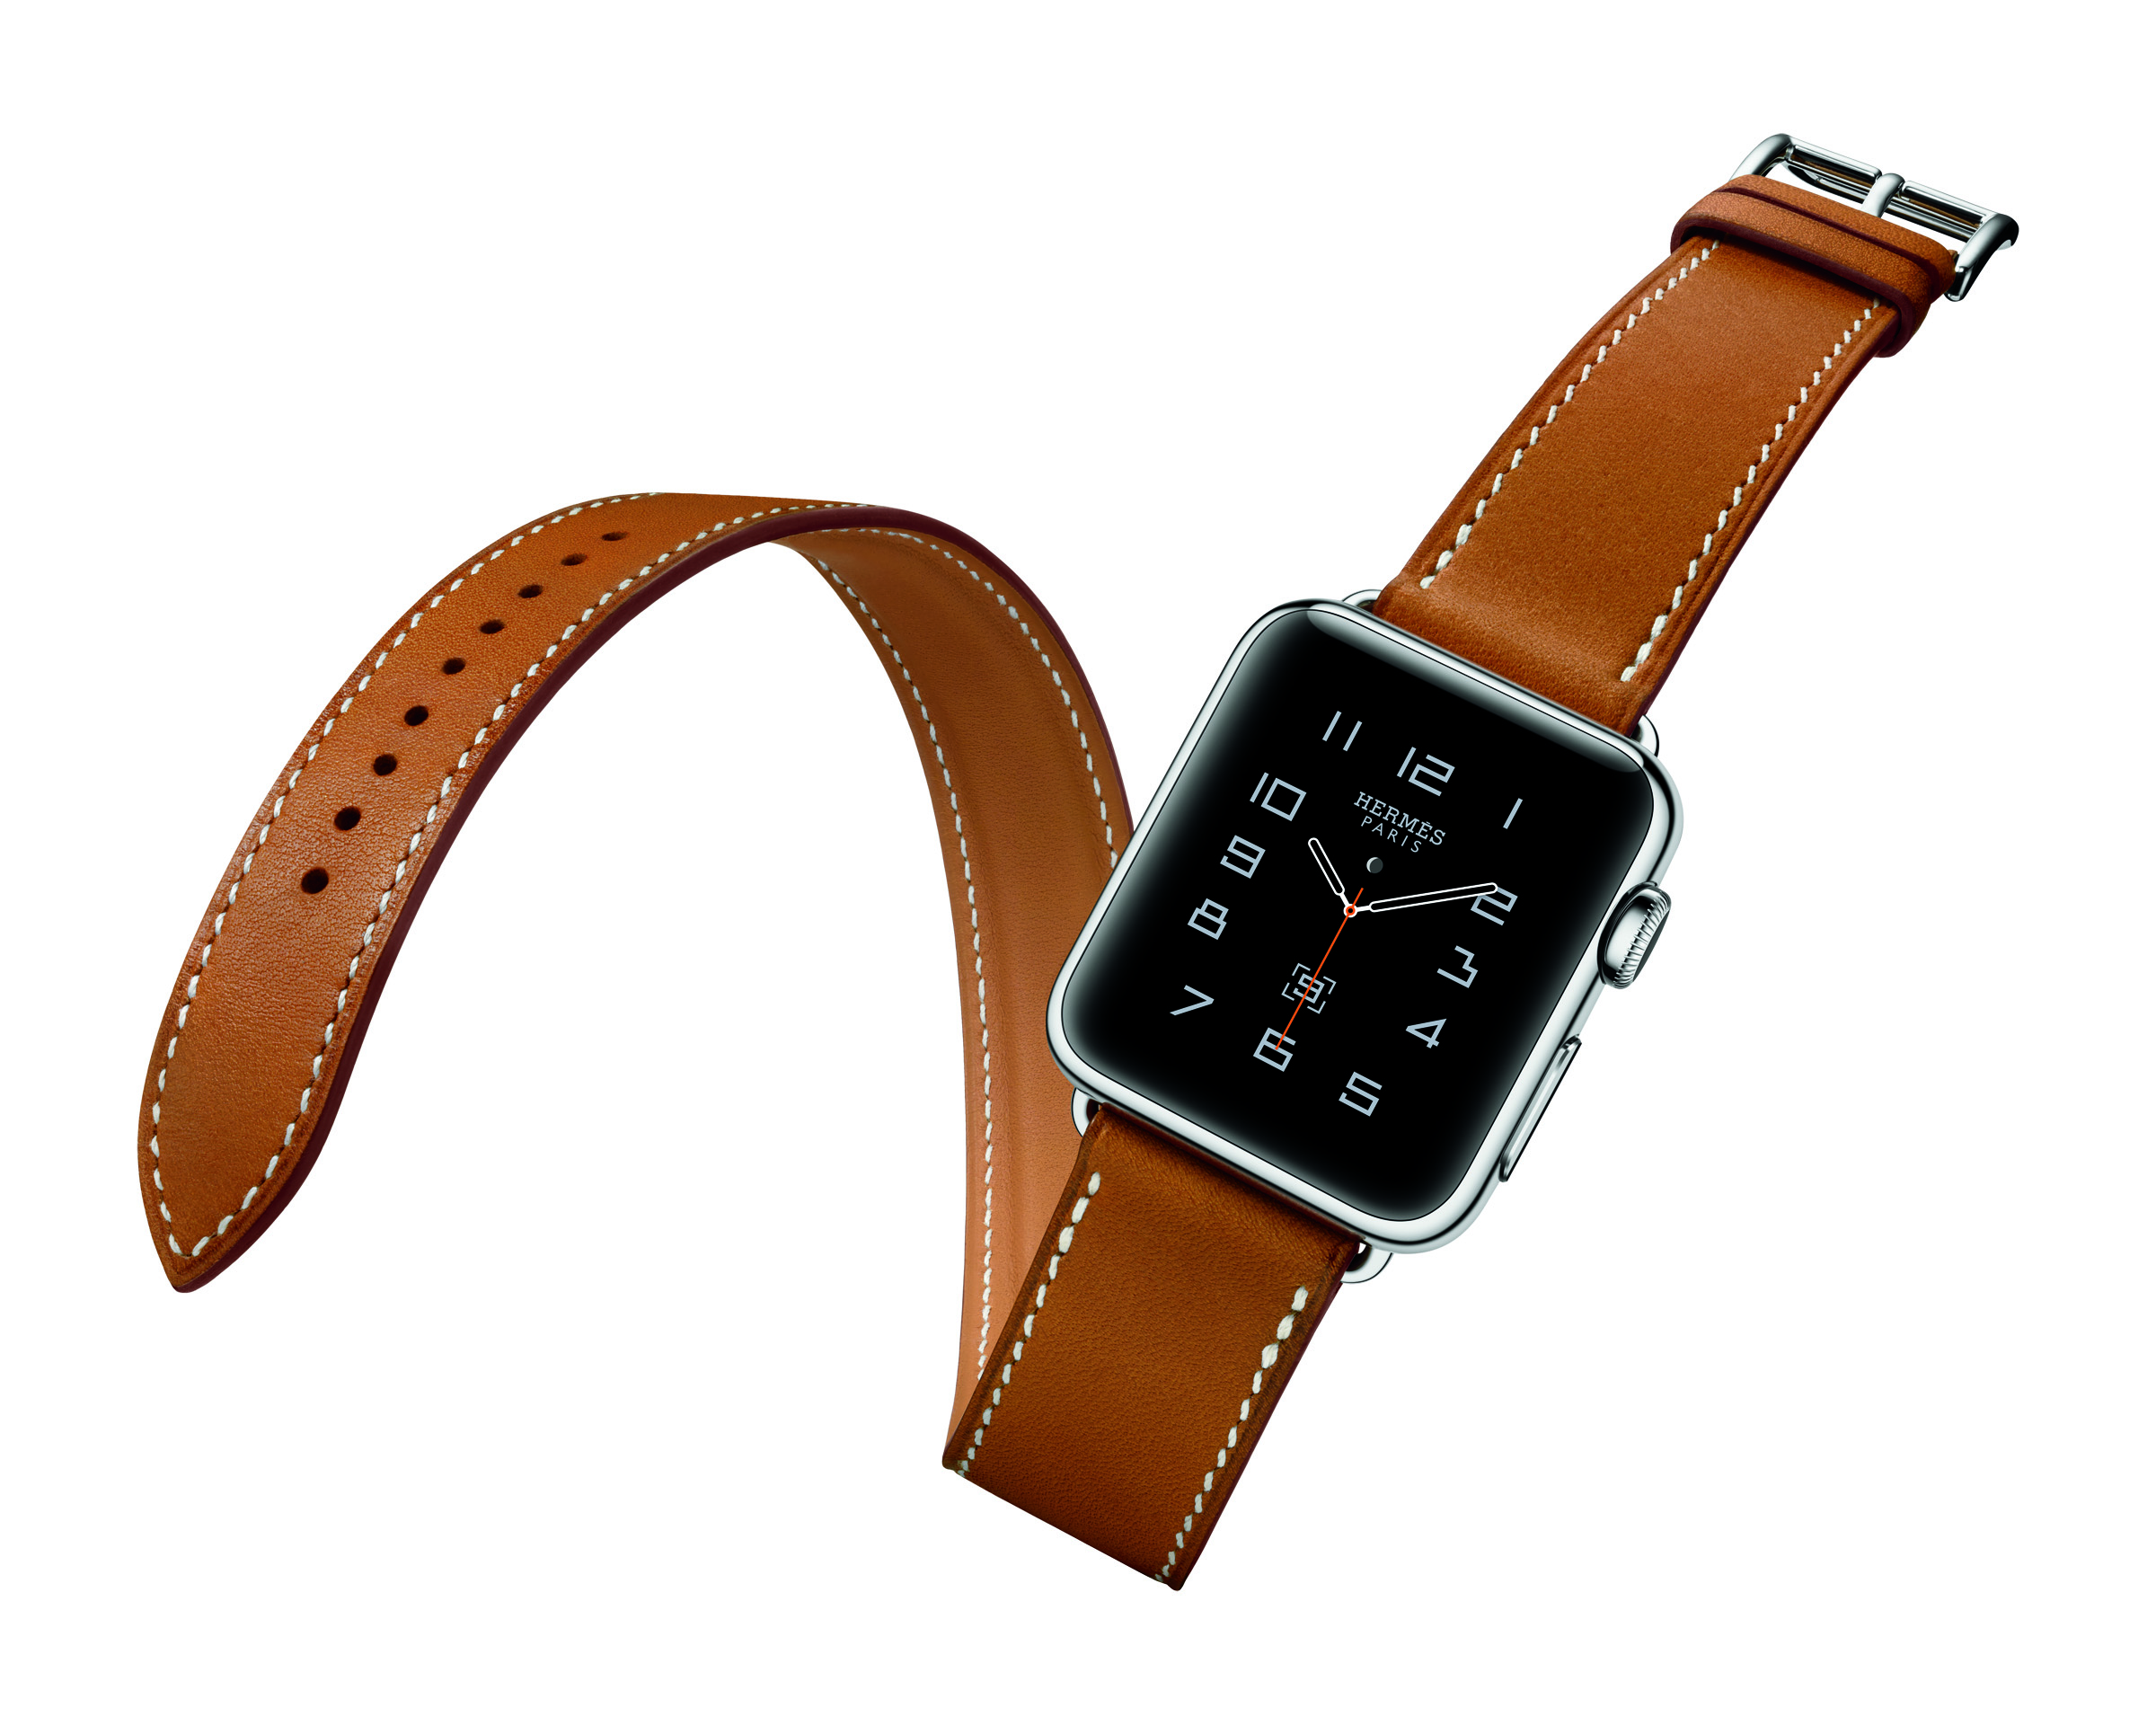 Apple watch with Hermès band